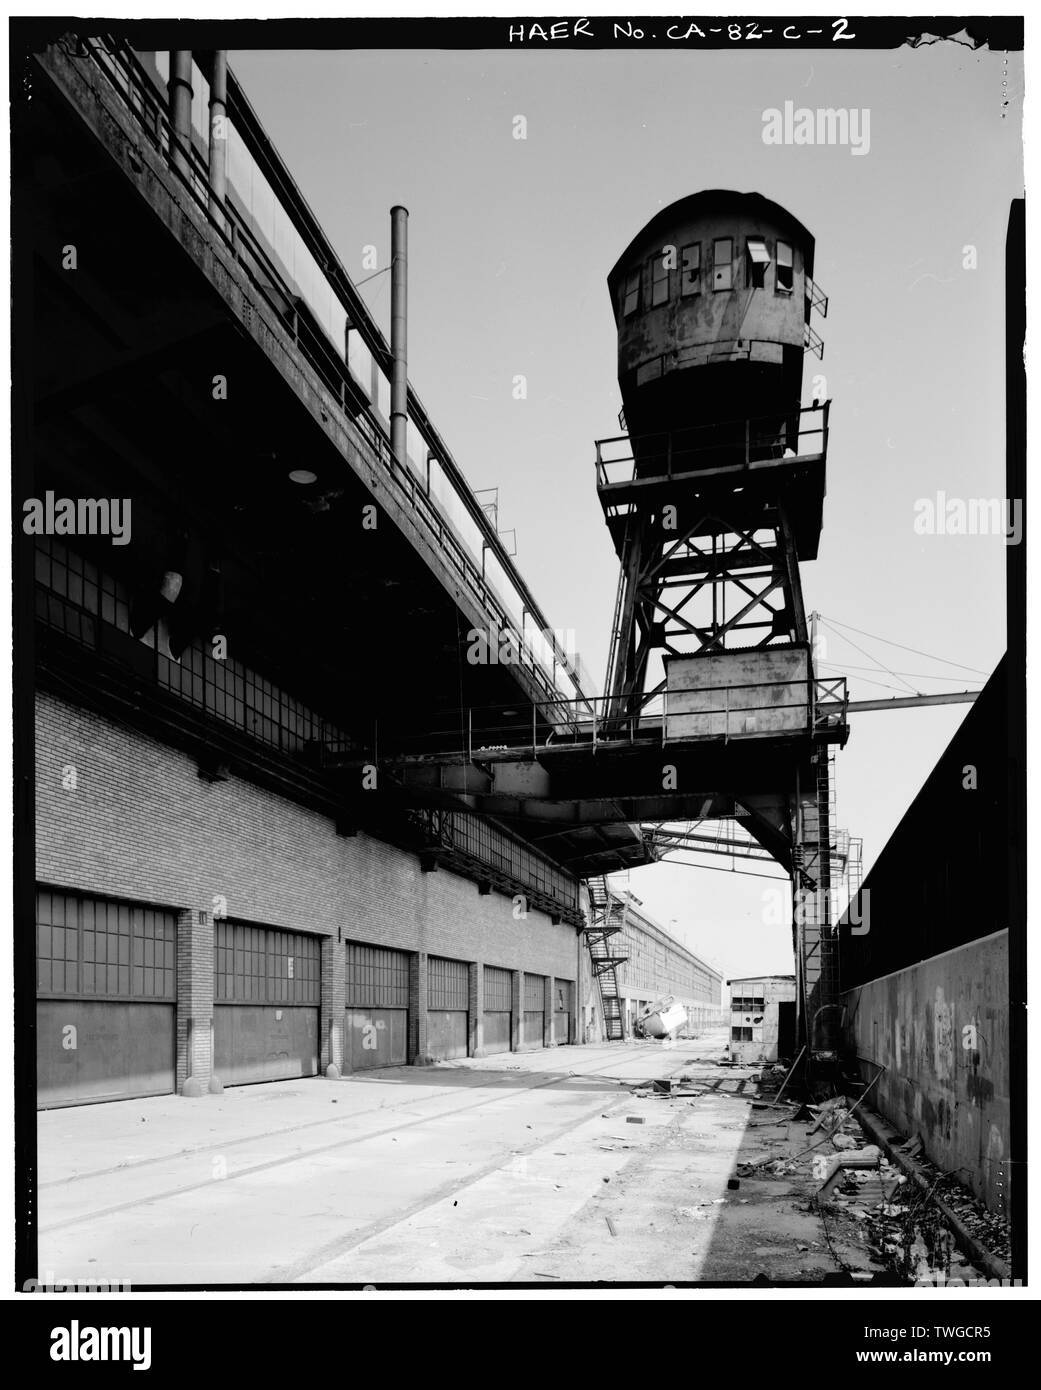 REAR OF CRANE, DIKE, AND SECOND FLOOR DECK FROM RAIL SPUR. VIEW TO NORTH. - Ford Motor Company Long Beach Assembly Plant, Crane, 700 Henry Ford Avenue, Long Beach, Los Angeles County, CA - Stock Image